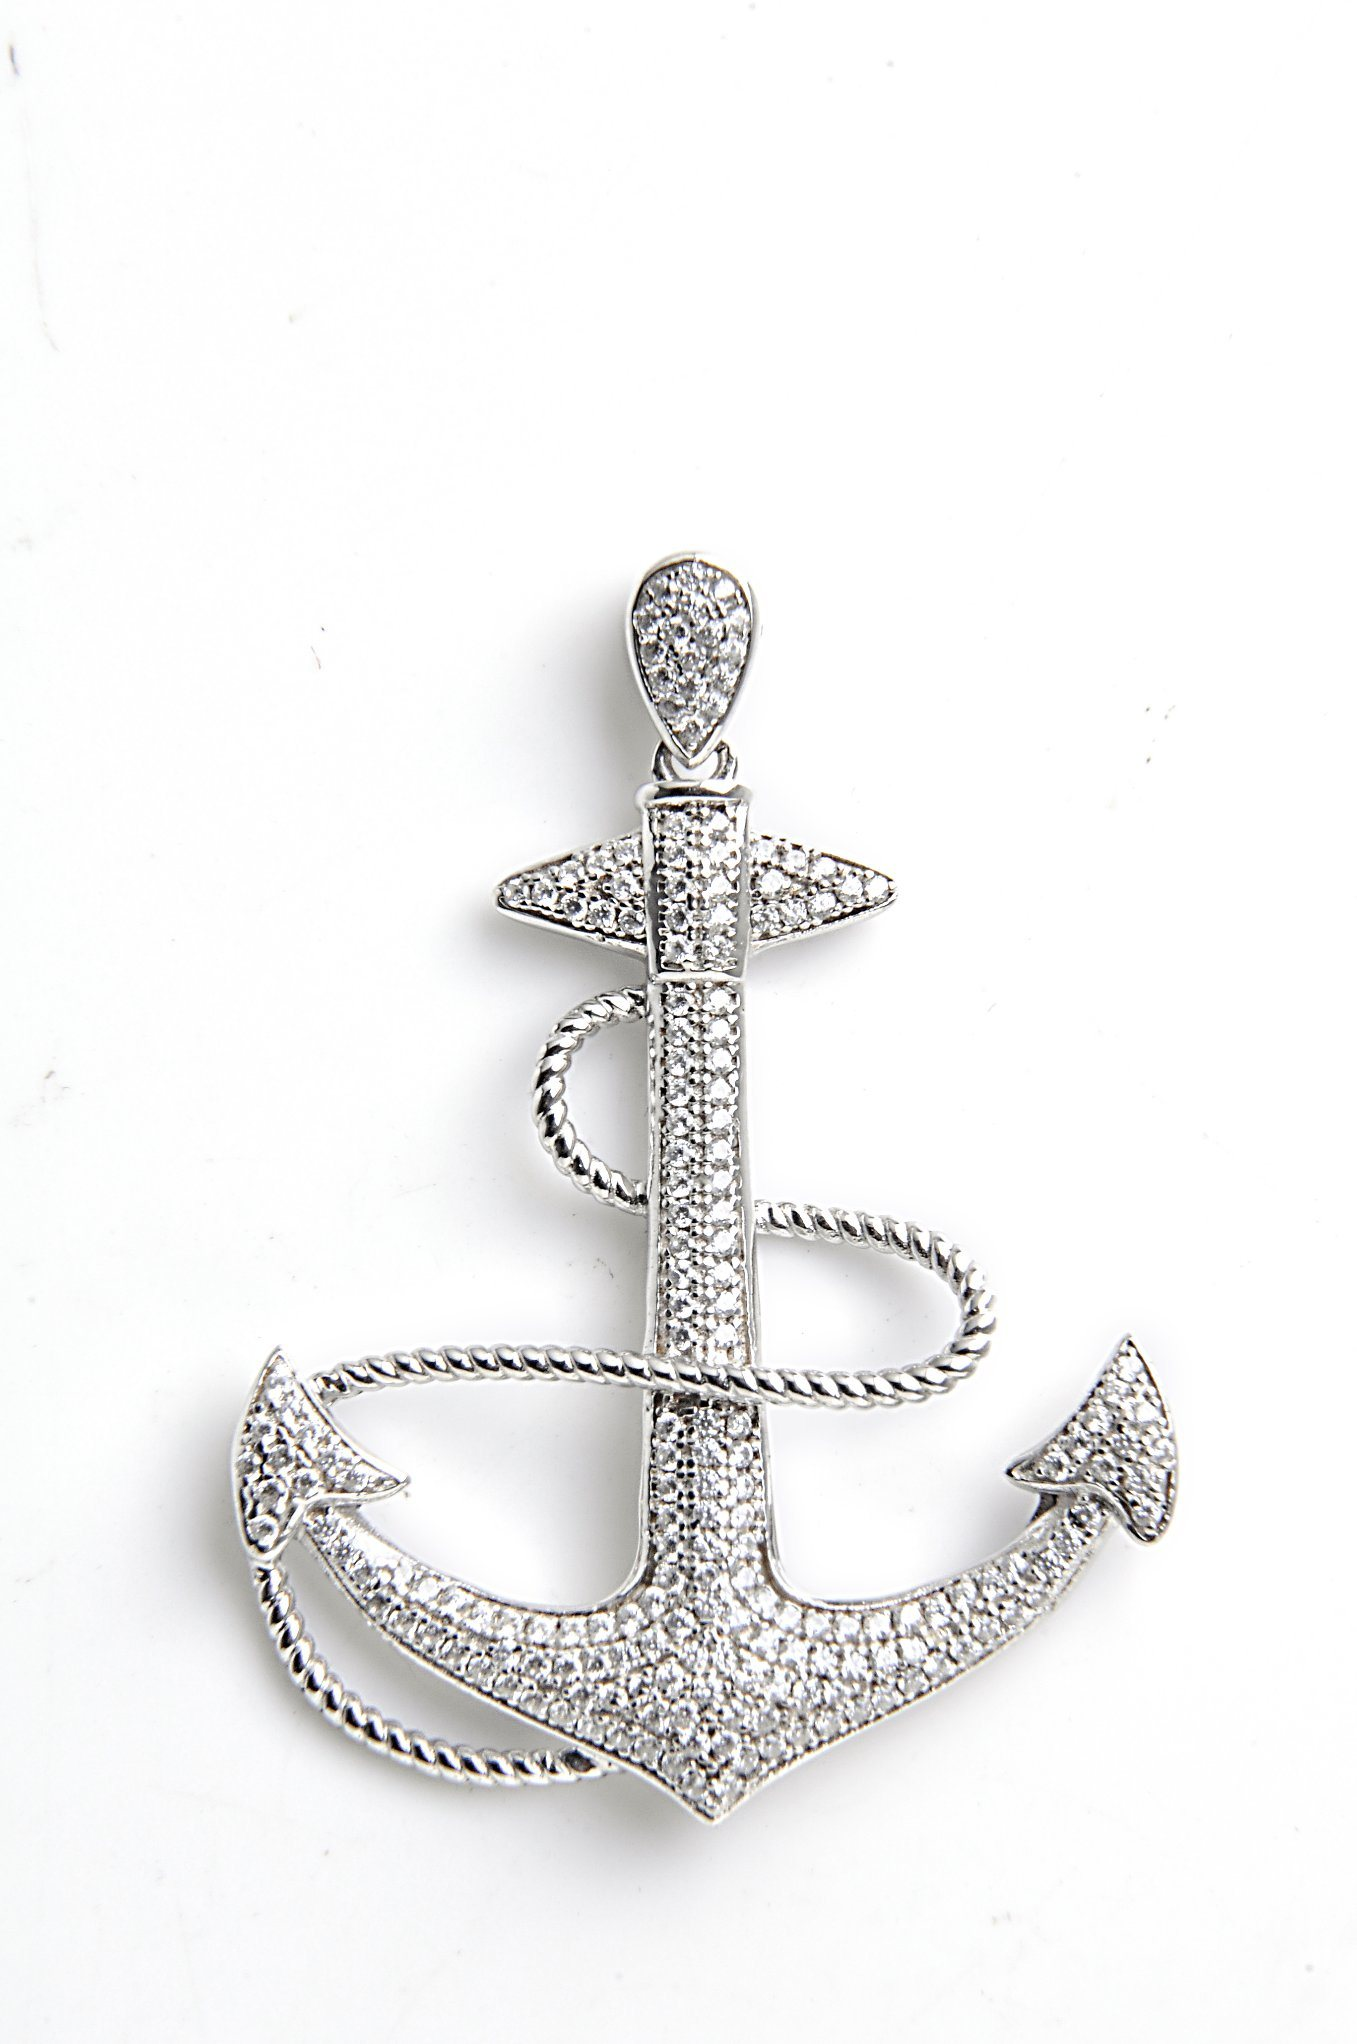 China hot sale fashion 925 silver anchor pendant set with cz china china hot sale fashion 925 silver anchor pendant set with cz china jewelry 925 silver jewelry aloadofball Images